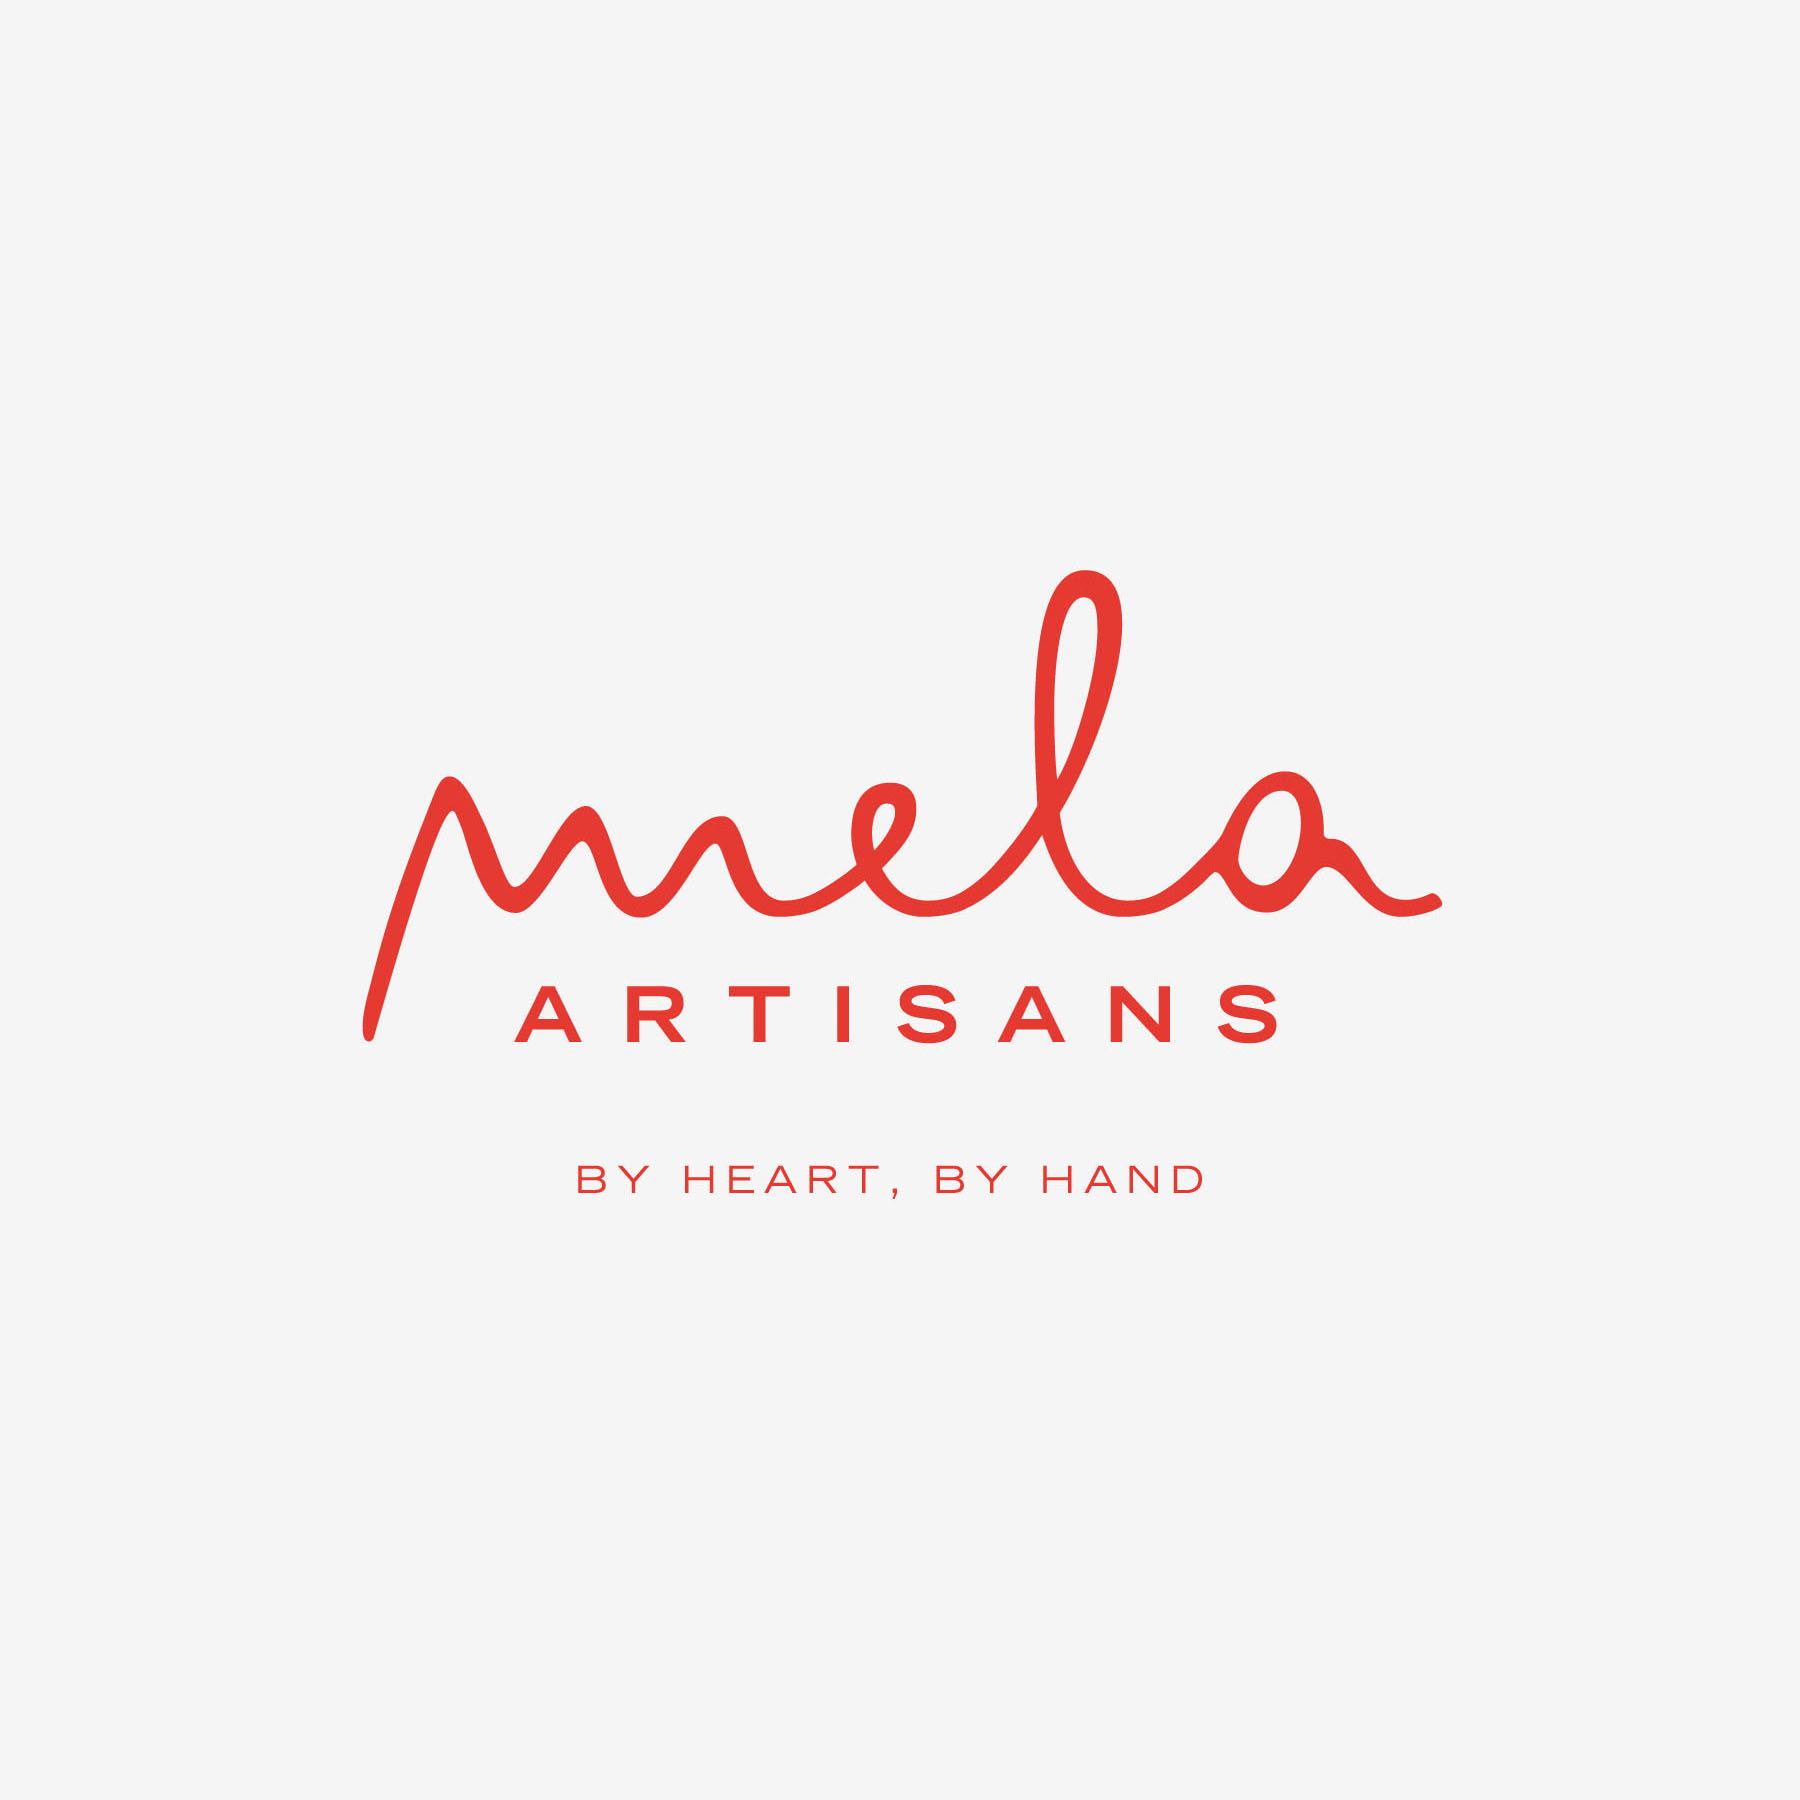 Mela Artisans - This logo/tagline was the first step in a full rebranding for this India based home furnishings and jewelry company. For the company's buyers at various retail levels, colors and logo style variations were implemented into packaging and signage.